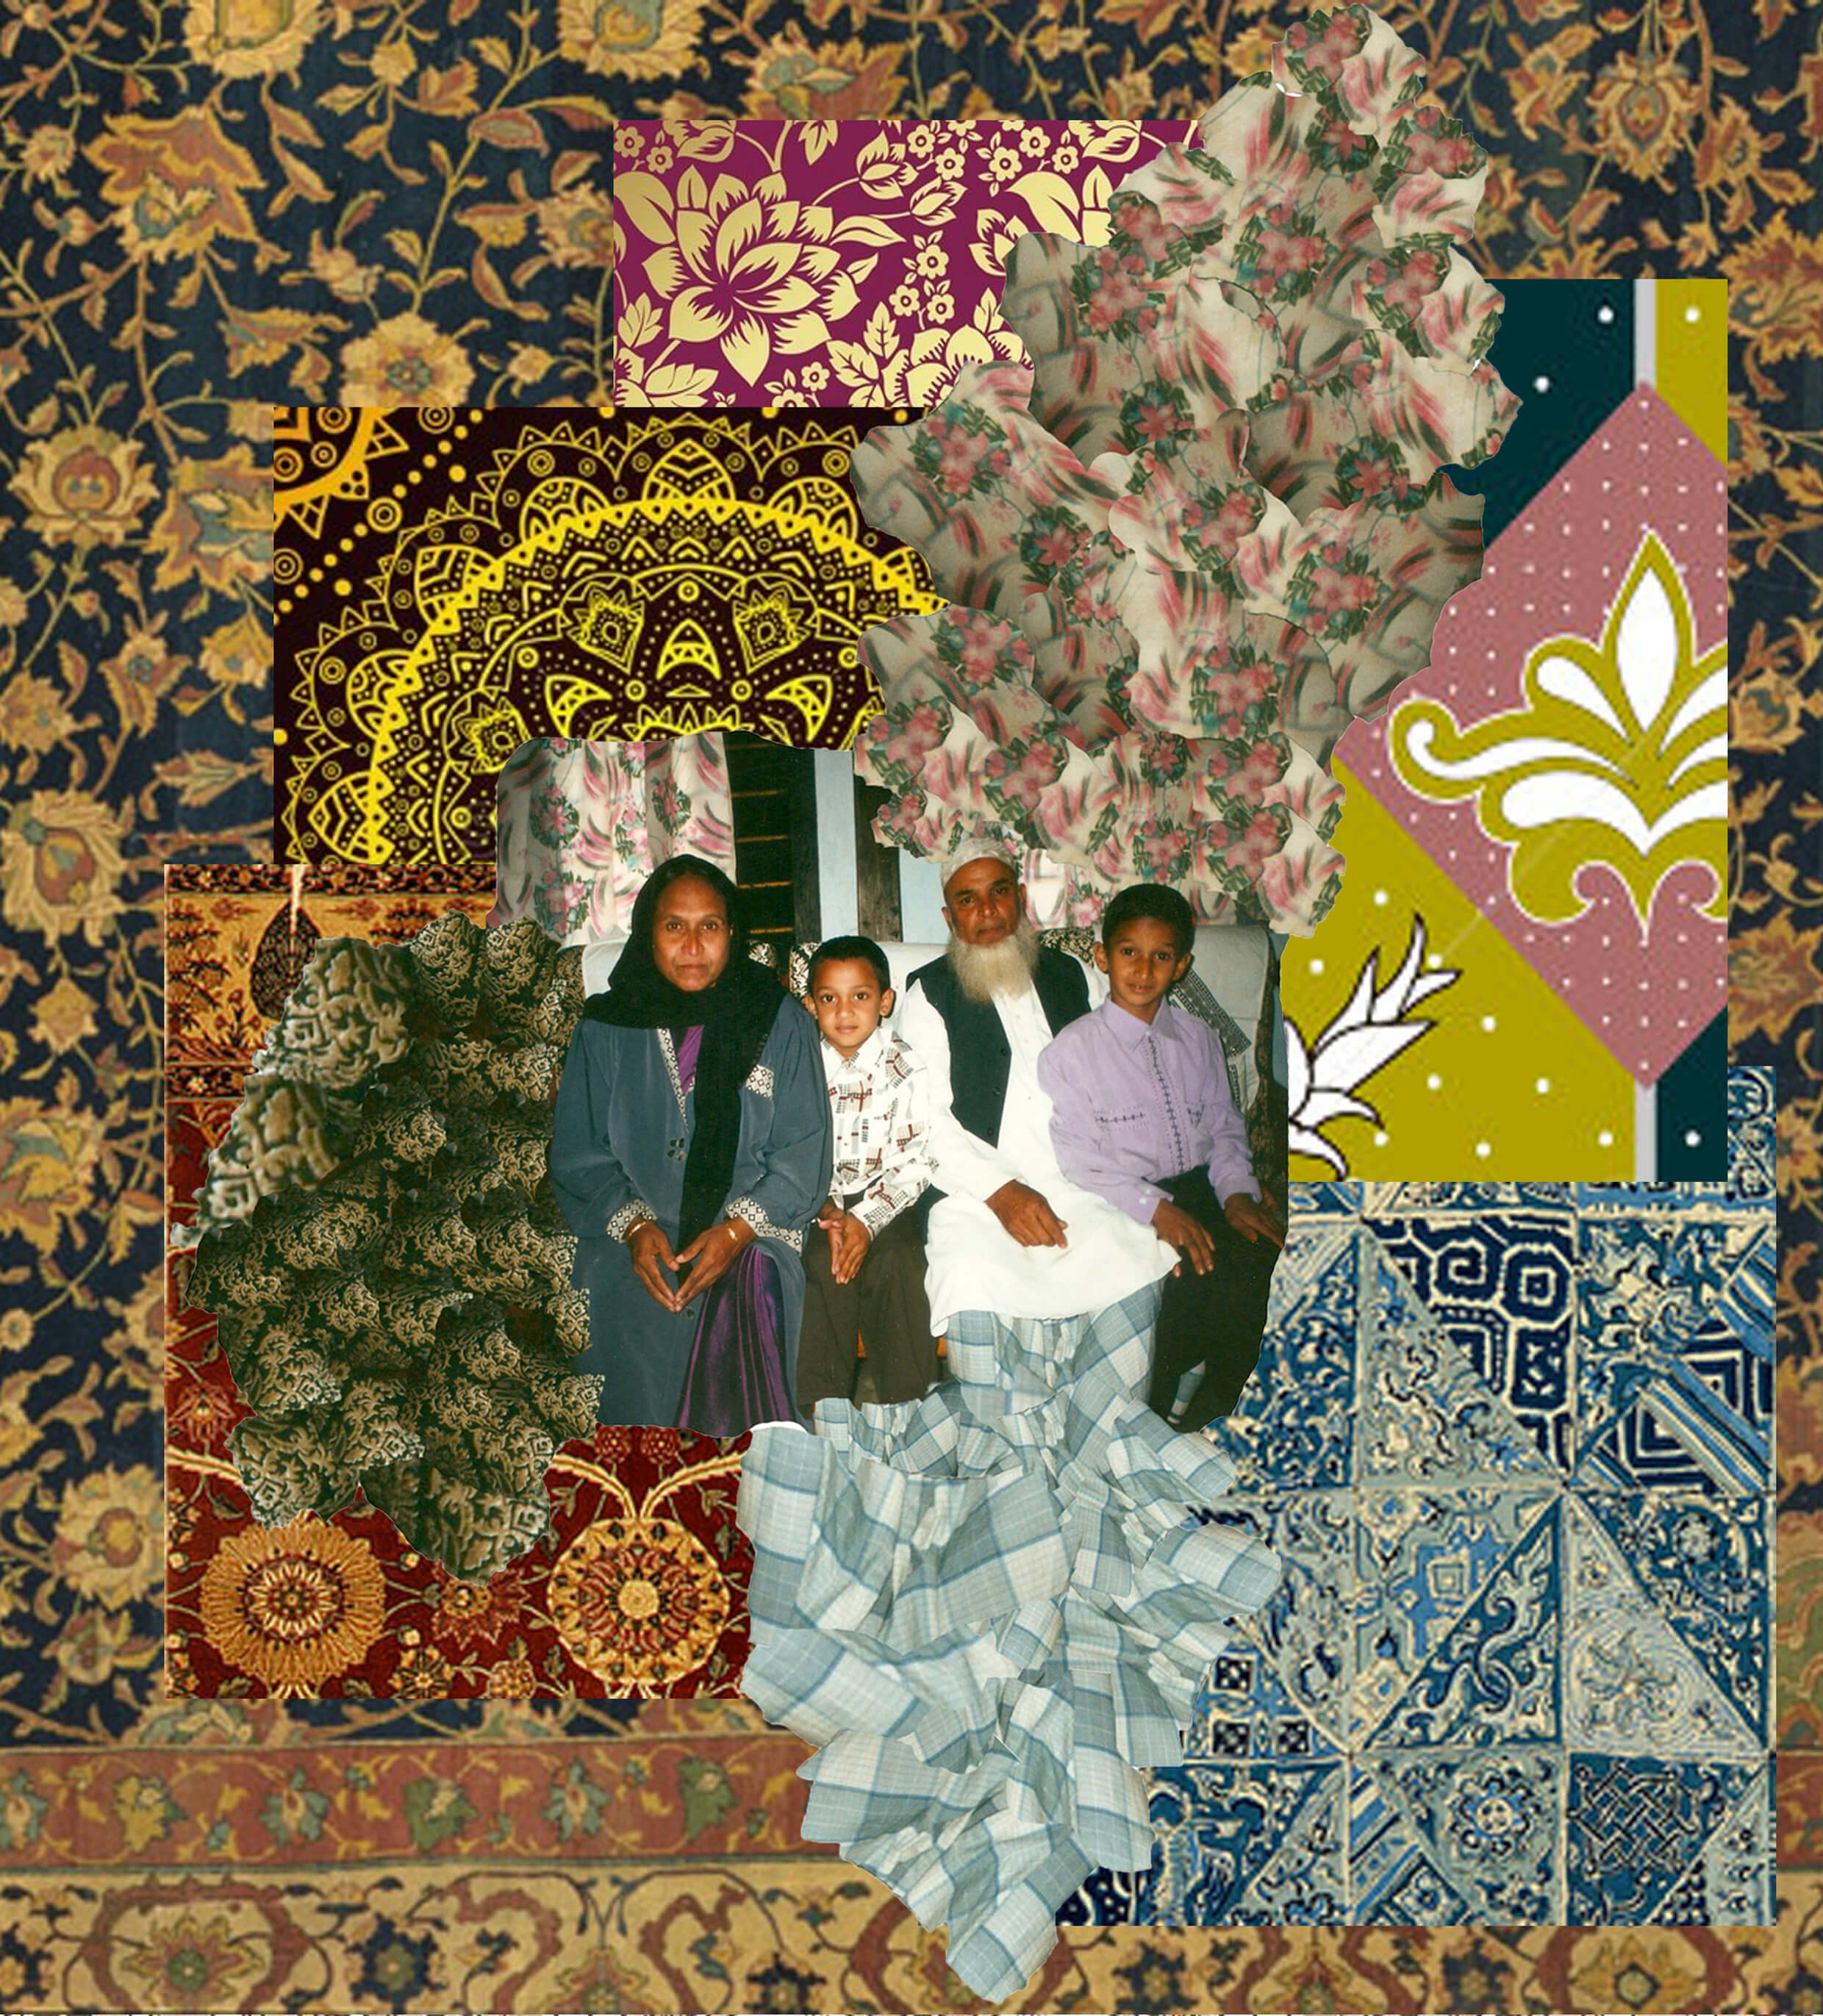 A collage image of patterns with a family photograph in the centre